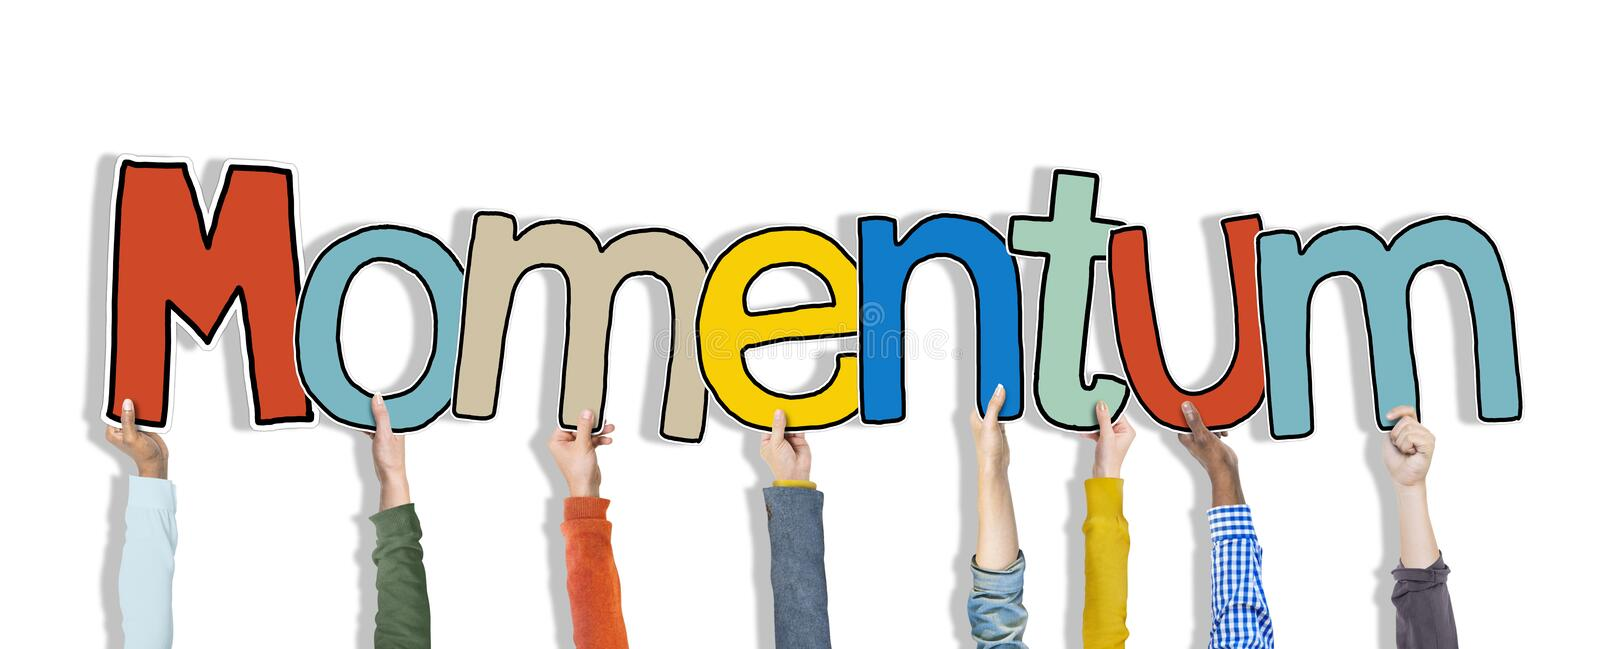 Hands Holding Momentum Word Concepts stock photos